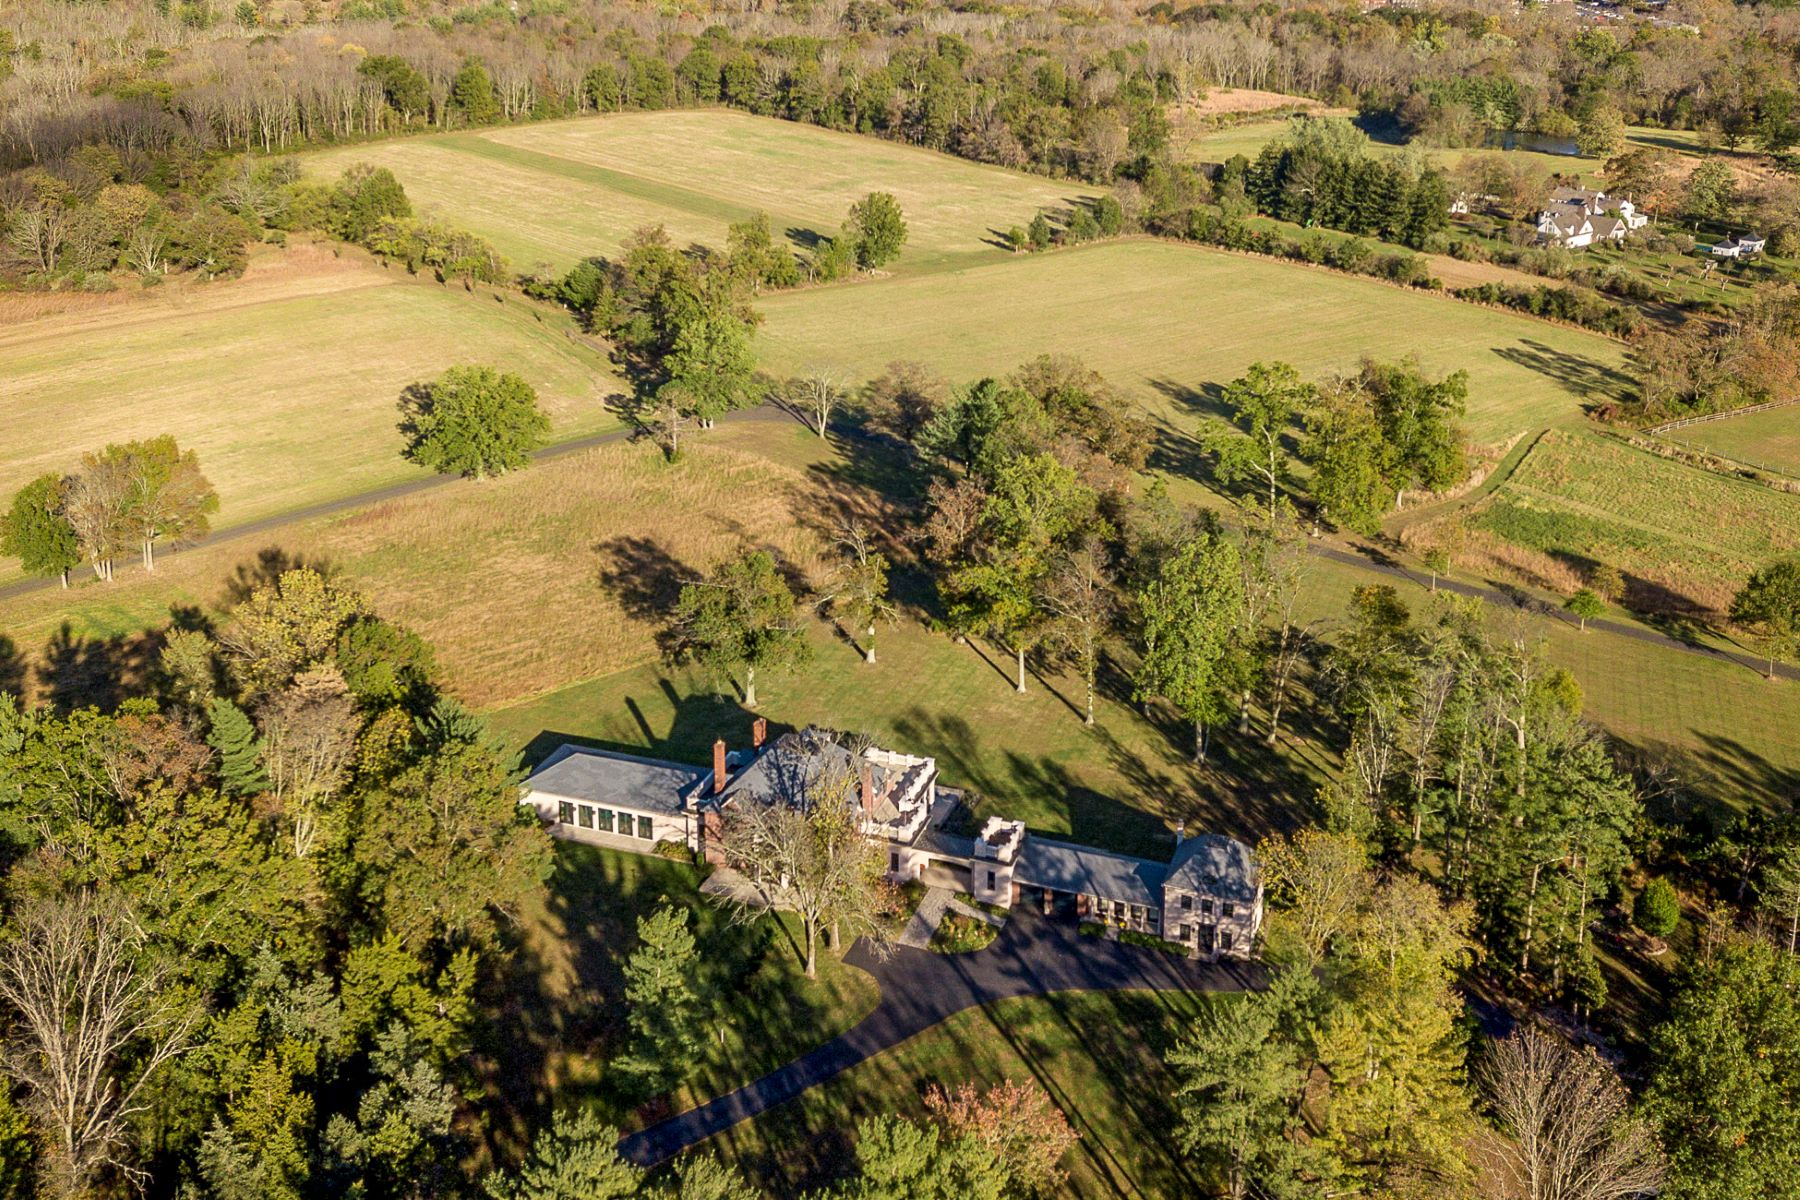 Single Family Homes for Sale at Write the Next Chapter of This Chateau's Epic Tale 306 Carter Road, Princeton, New Jersey 08540 United States